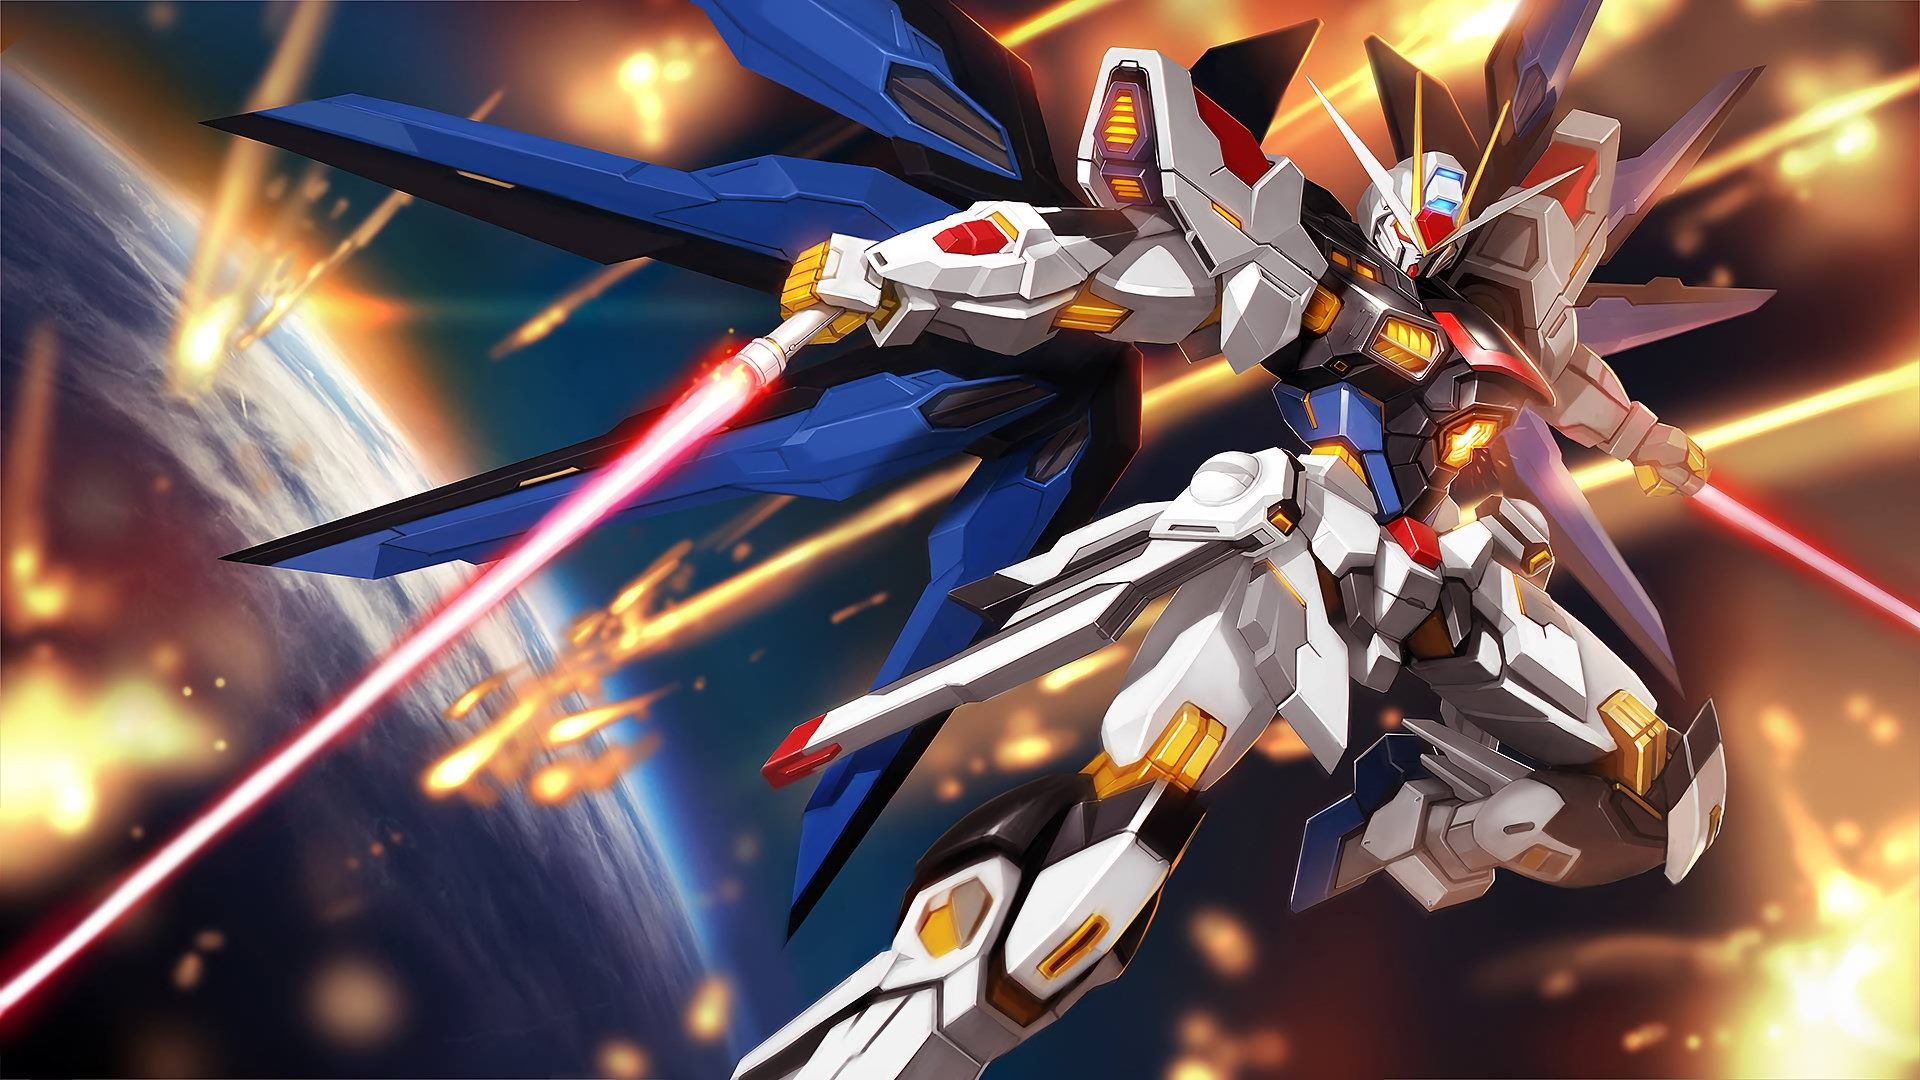 1920x1080 - Mobile Suit Gundam Seed Destiny Wallpapers 25